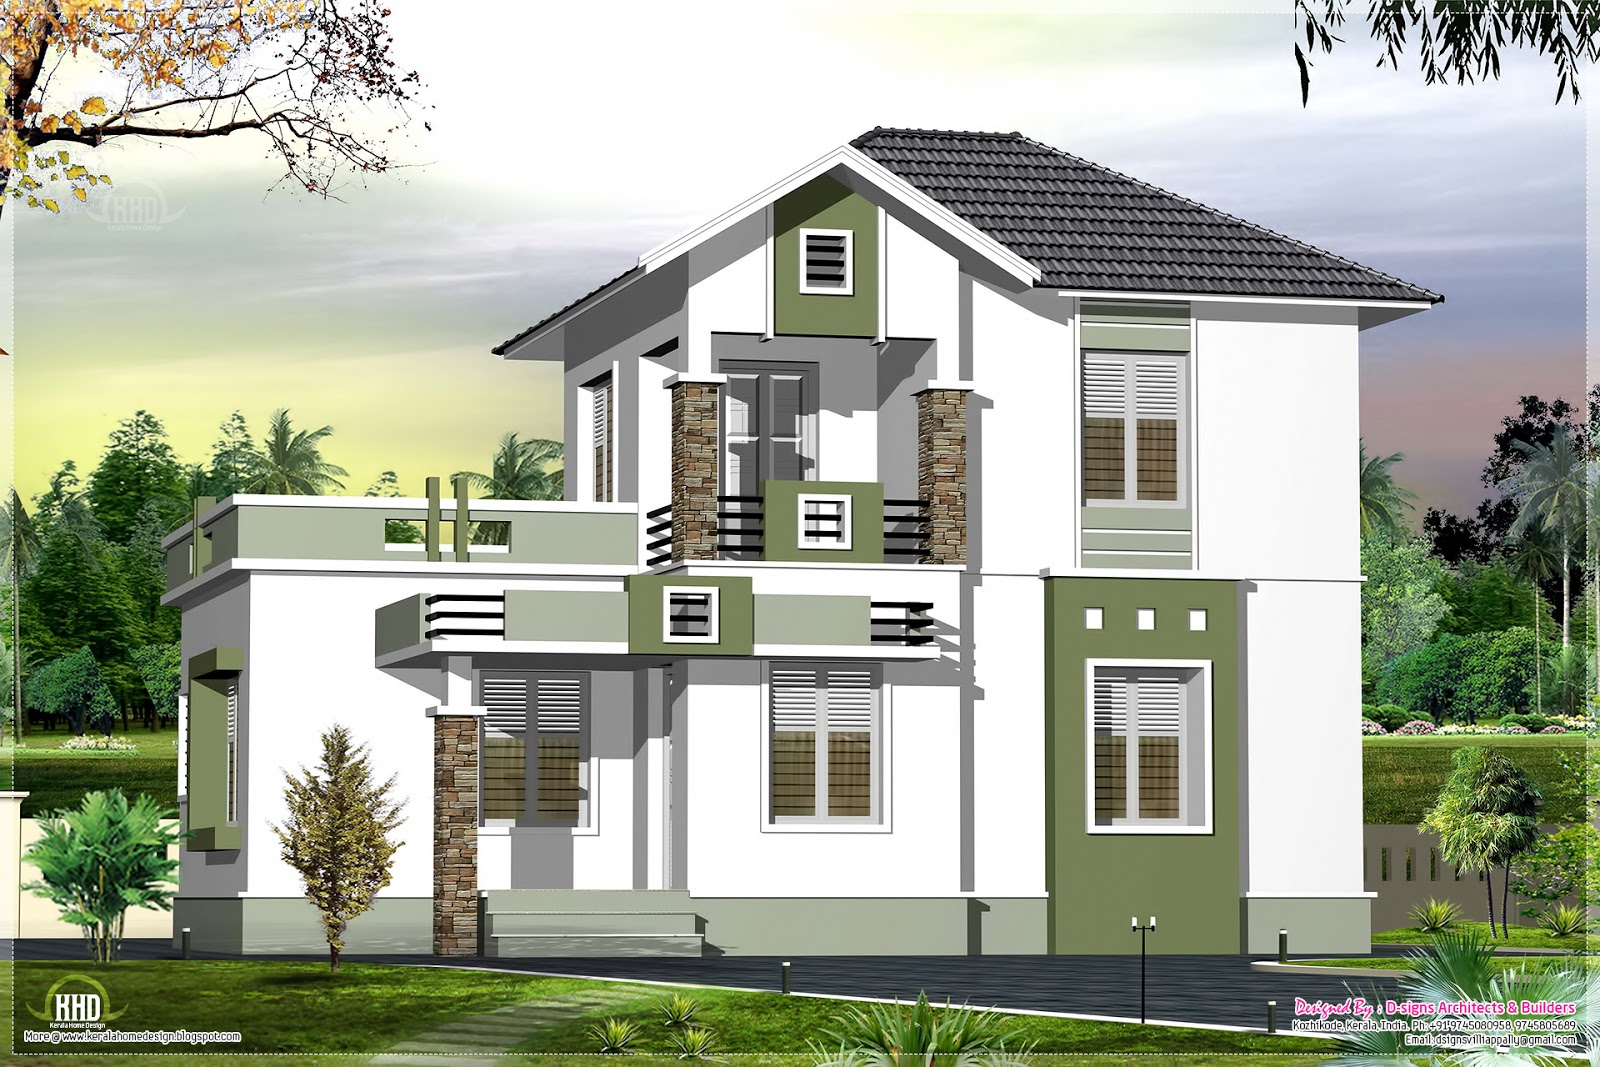 Small double floor home design in 1200 kerala home design and floor plans Low budget home design ideas